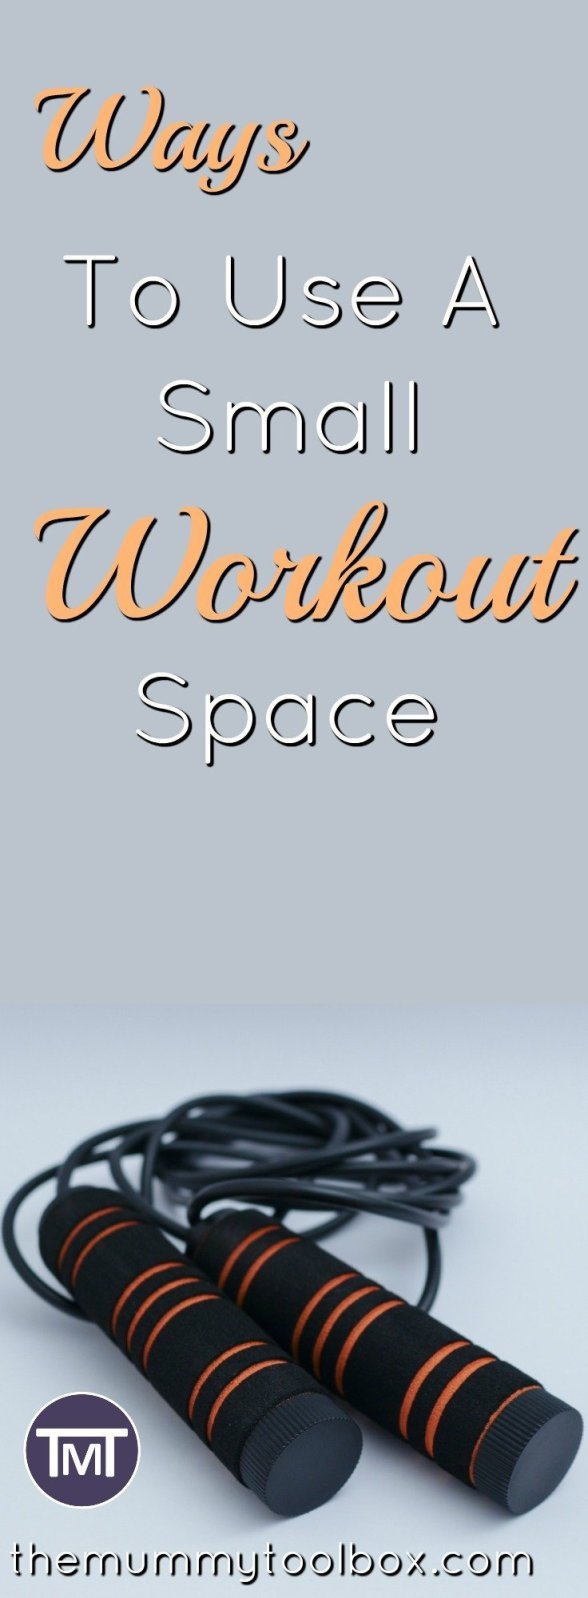 Unless you have a home gym you need to make do with a small workout space and here are the tips, tricks and exercises you can use to do it.